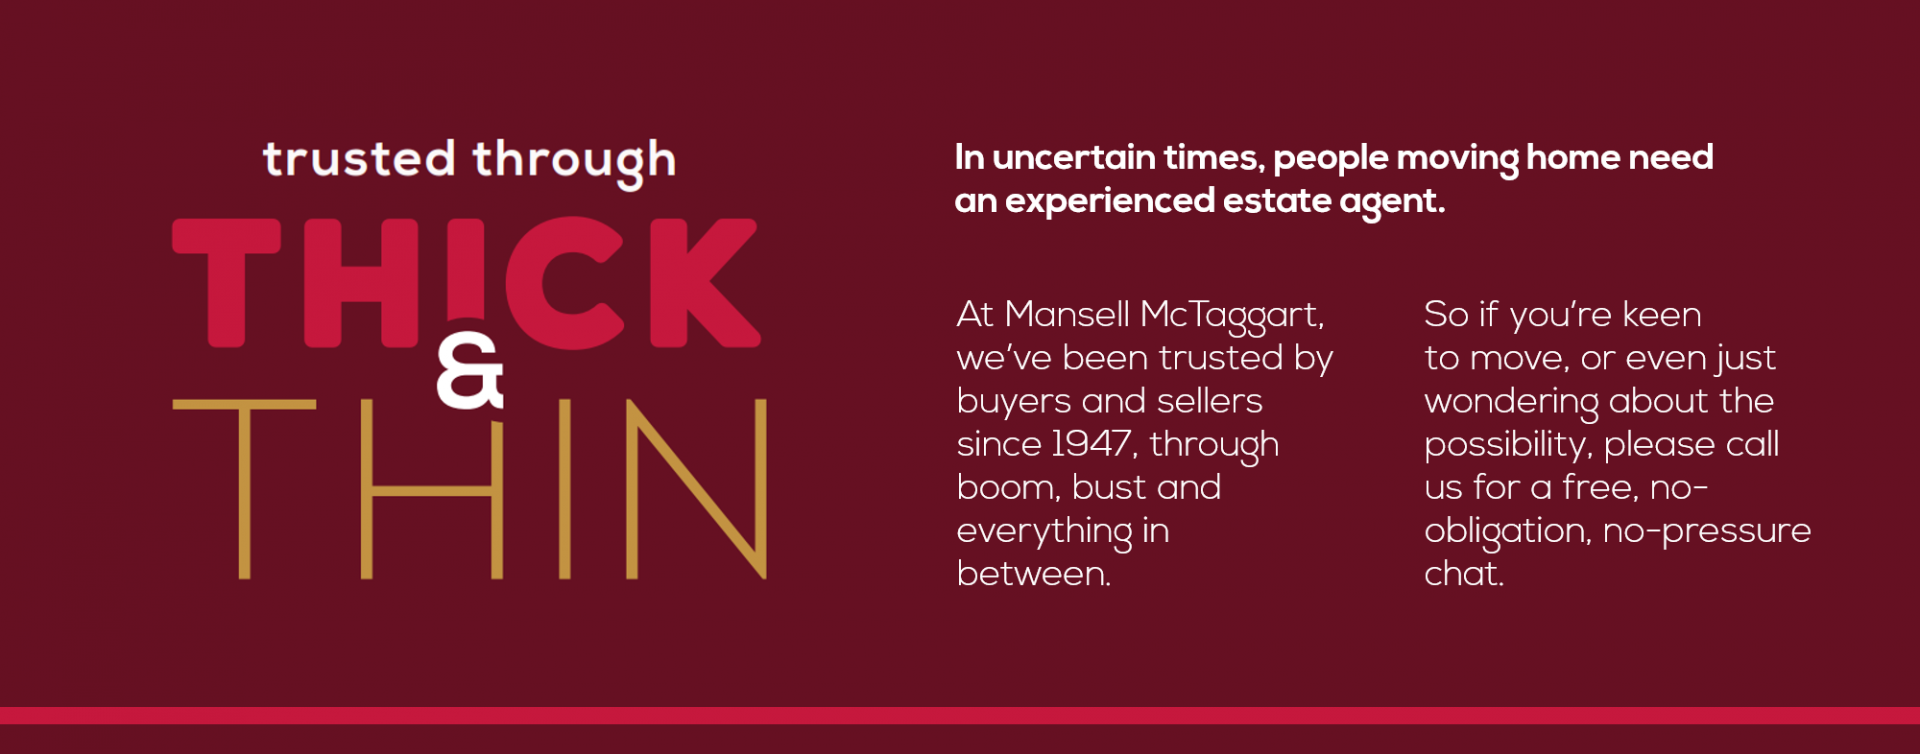 The UK's Property Market Boom – Turn To Mansell McTaggart Estate Agency To Make The Right Investment